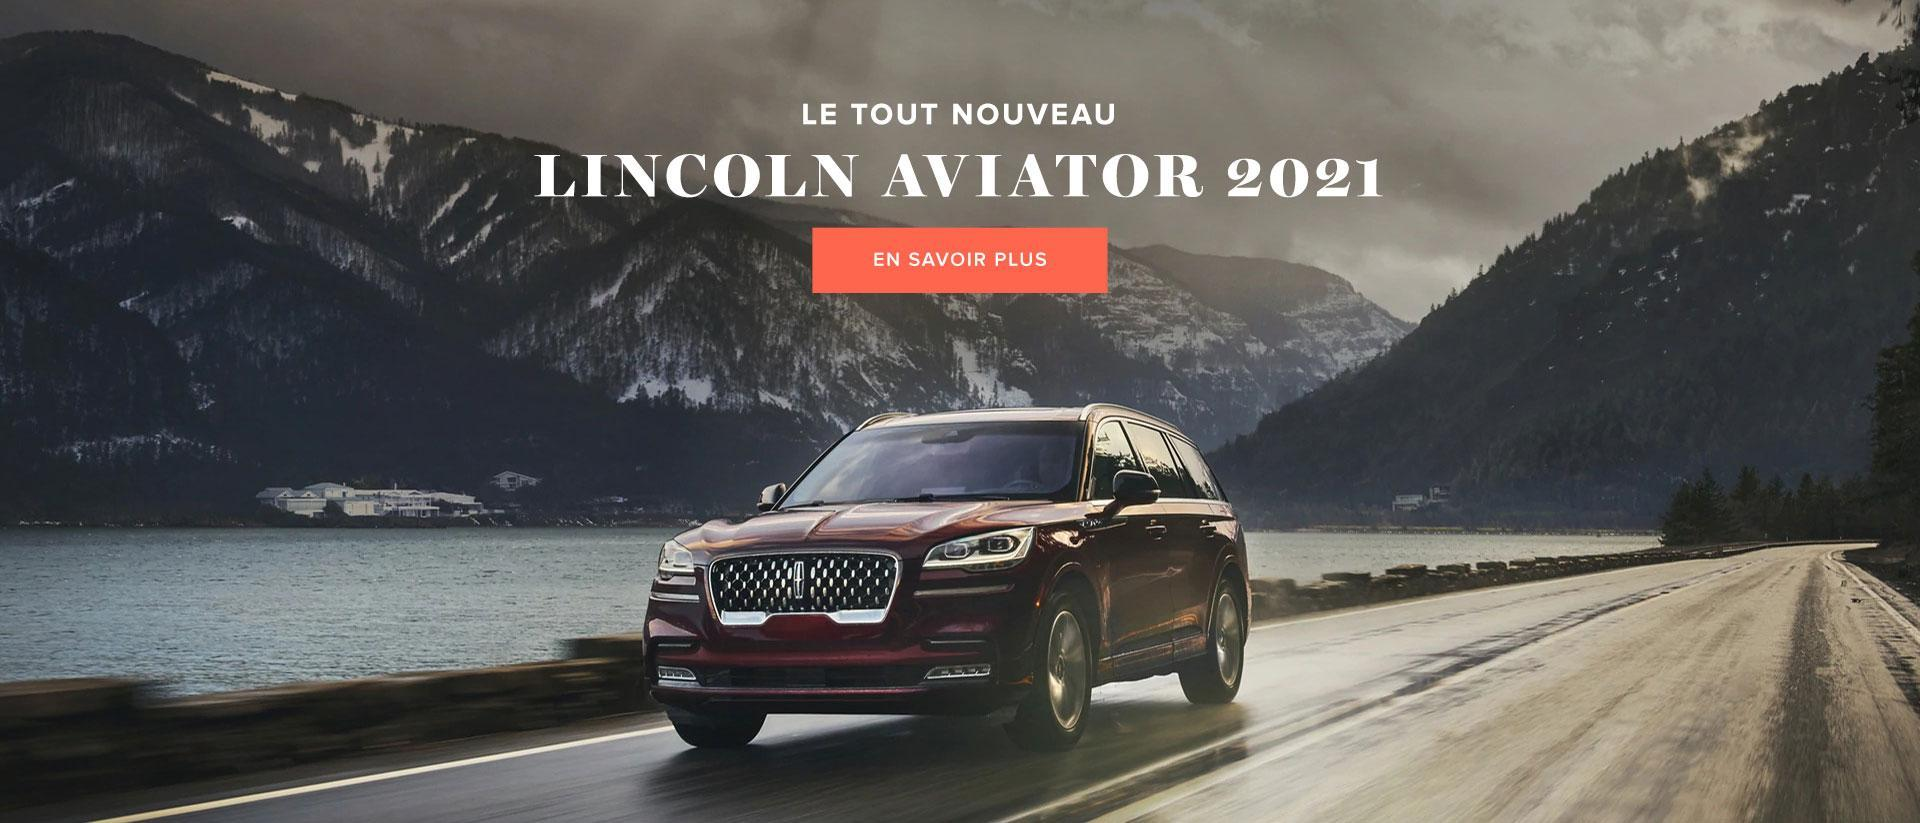 Lincoln Aviator 2021 | Lincoln of Canada